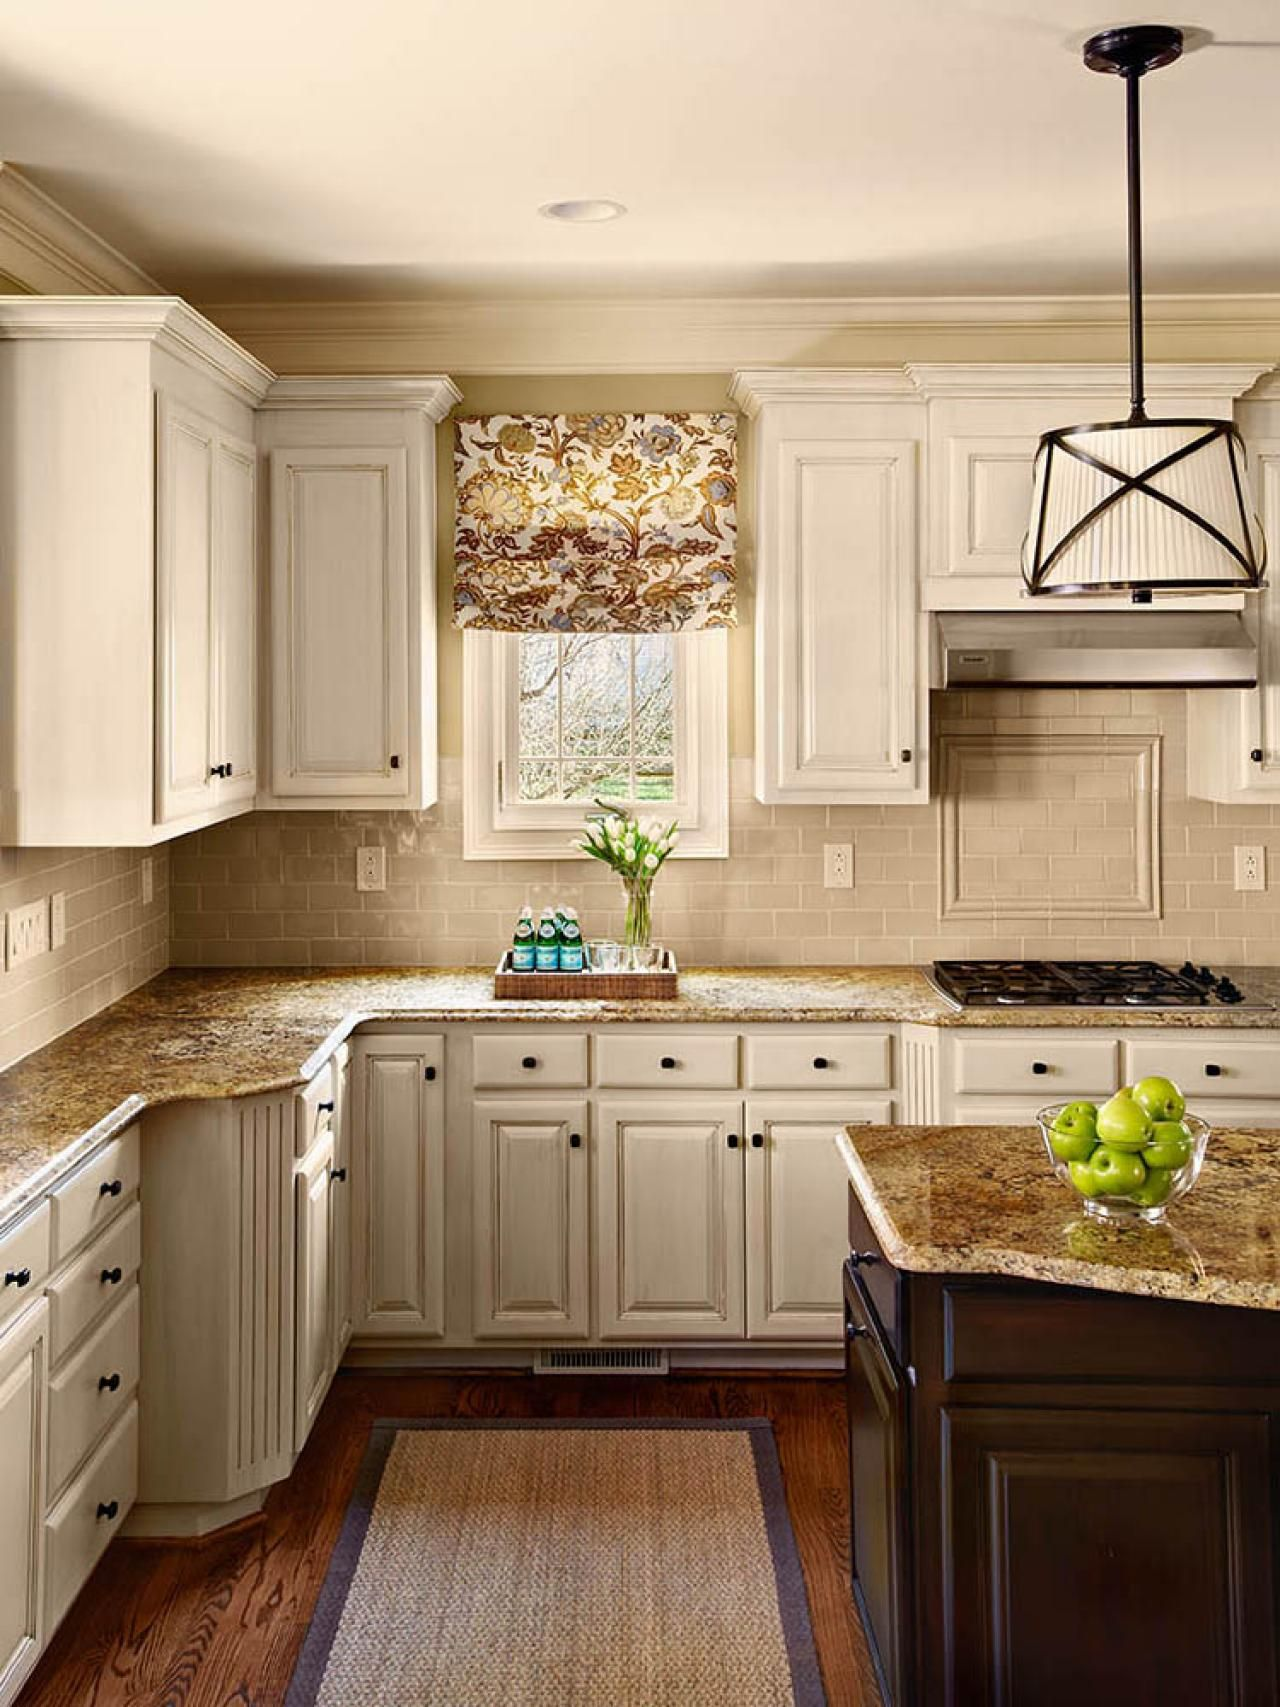 Resurfacing Kitchen Cabinets: Pictures & Ideas From | Cabinet Design ...